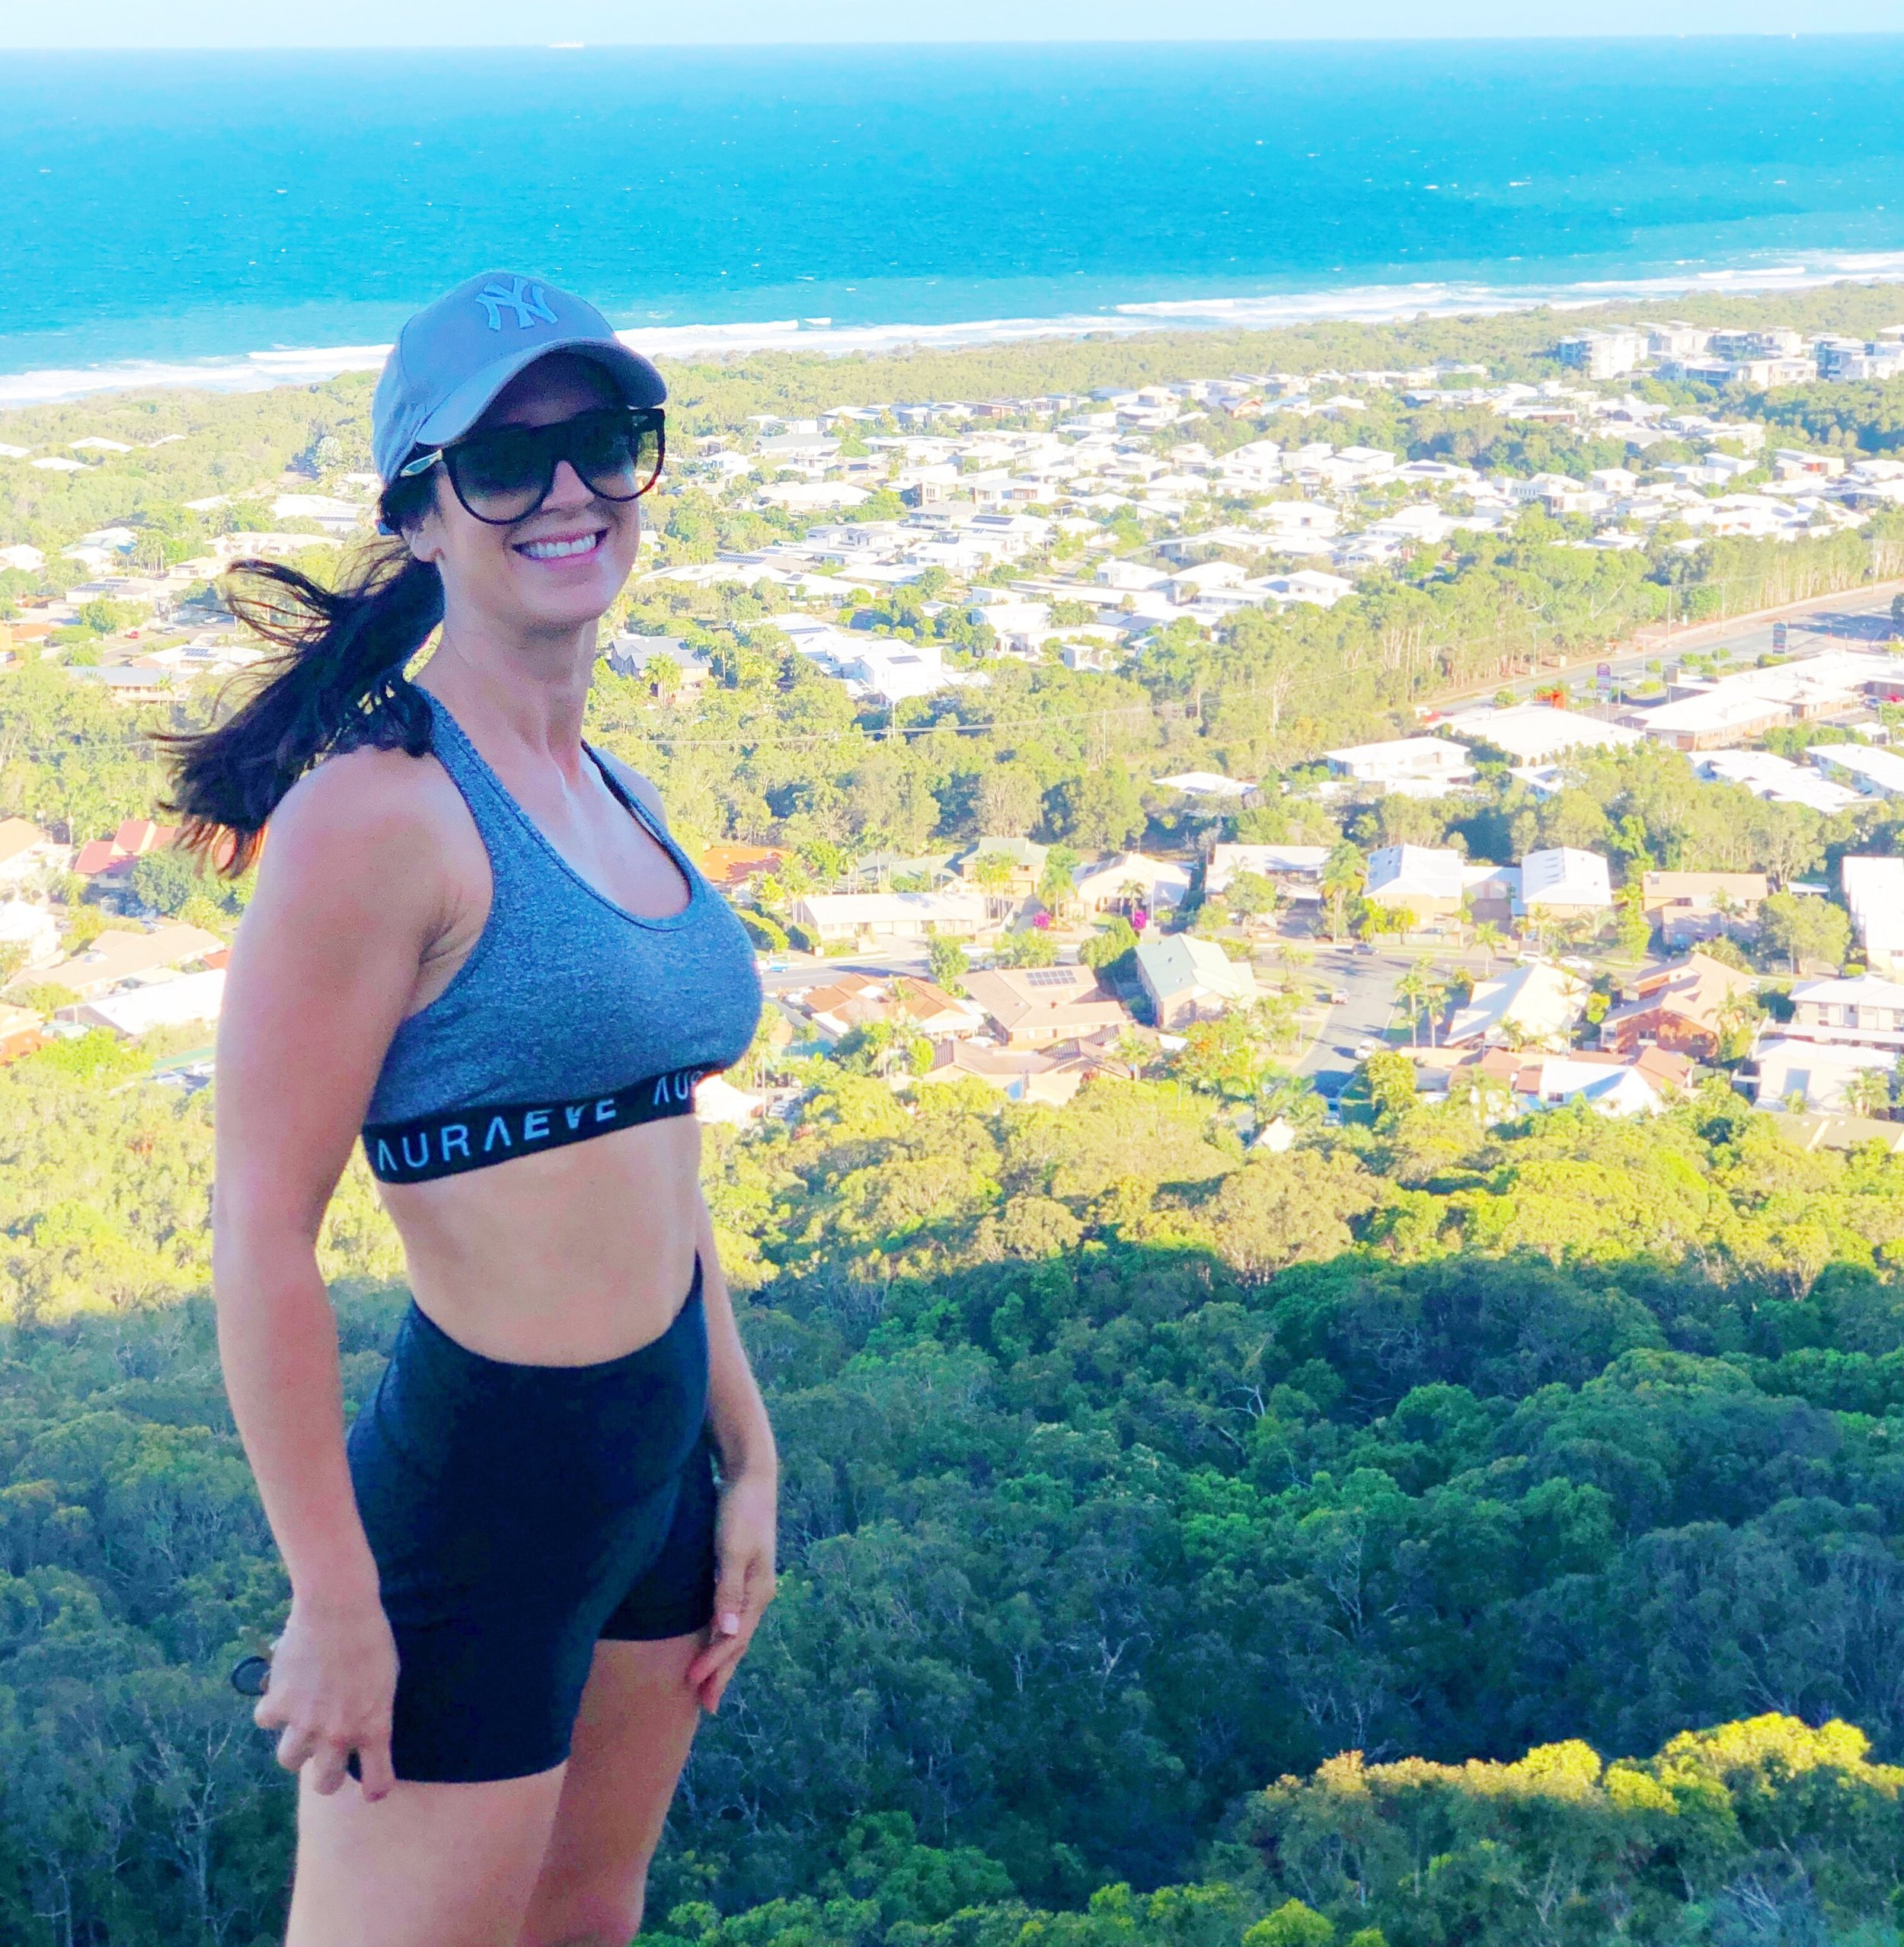 On top of Mount Coolum